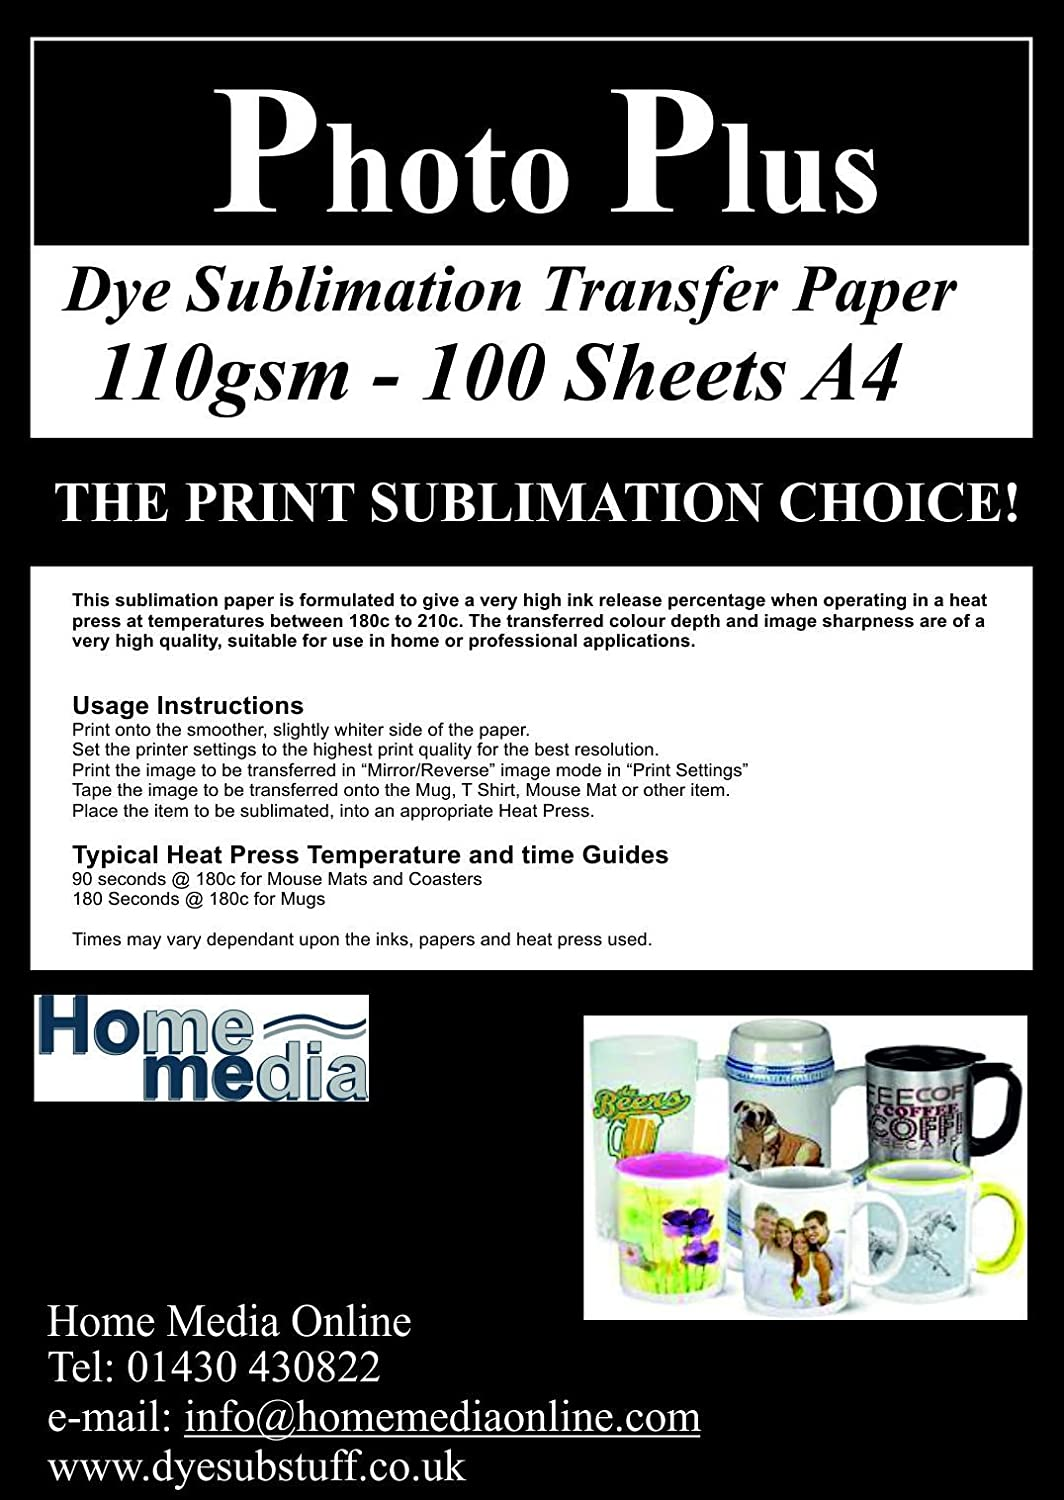 Dye Sublimation Heat Transfer Paper - 100 Sheets A4